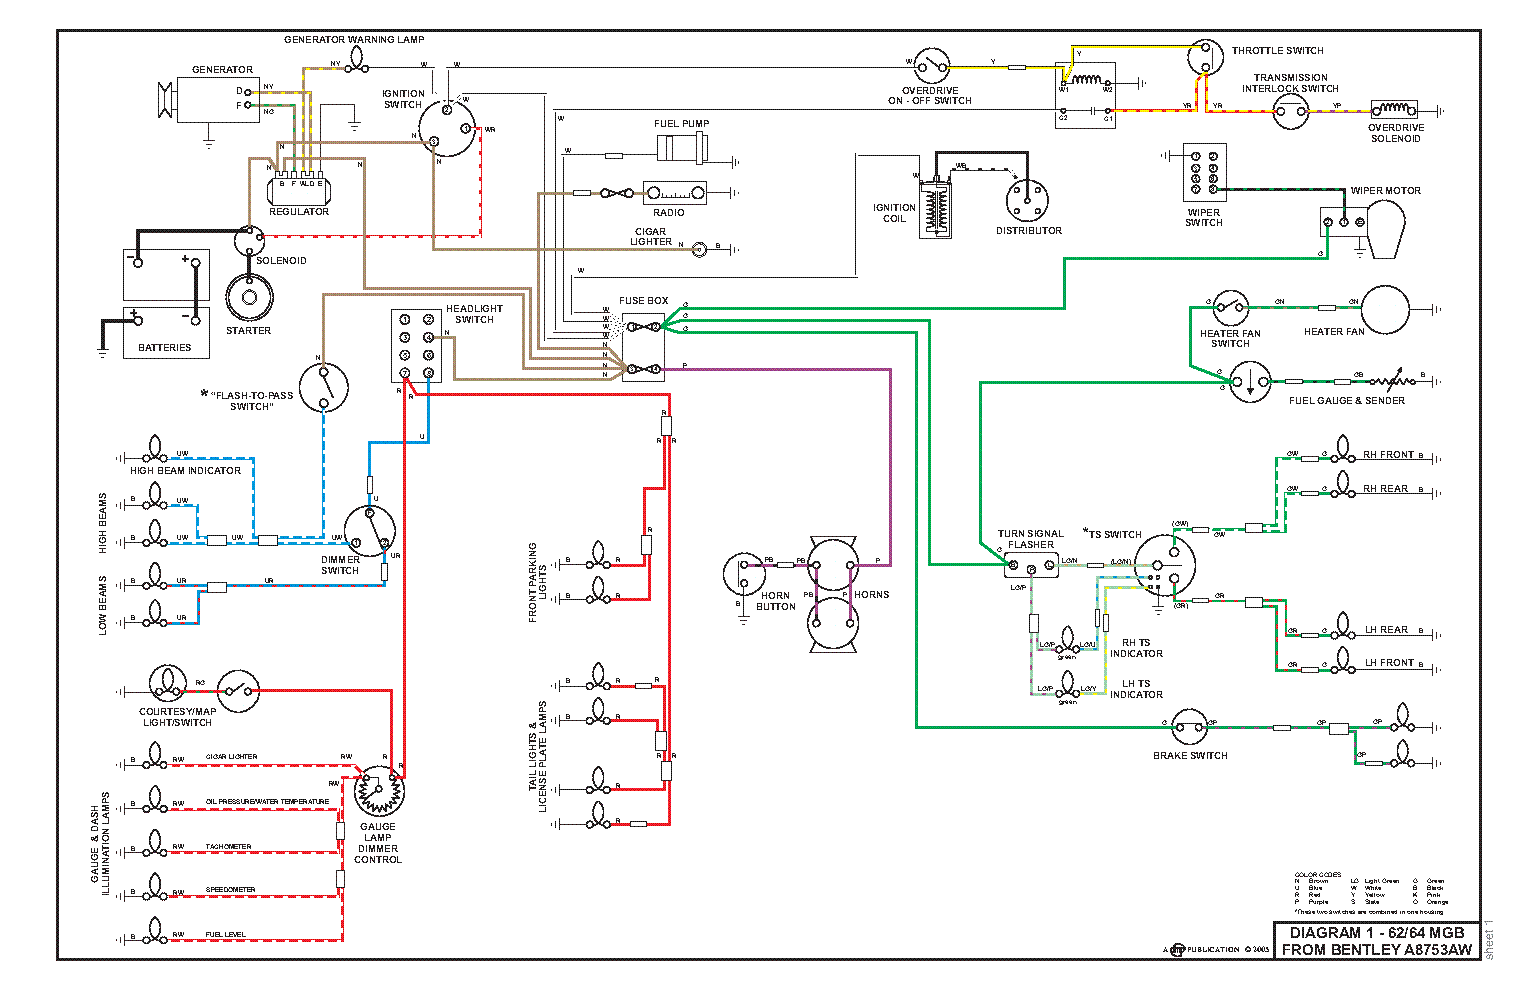 bentley_mg_b_car_wiring_diagrams.pdf_1 mg tc wiring diagram amphicar wiring diagram \u2022 wiring diagrams j how to read control panel wiring diagrams pdf at soozxer.org